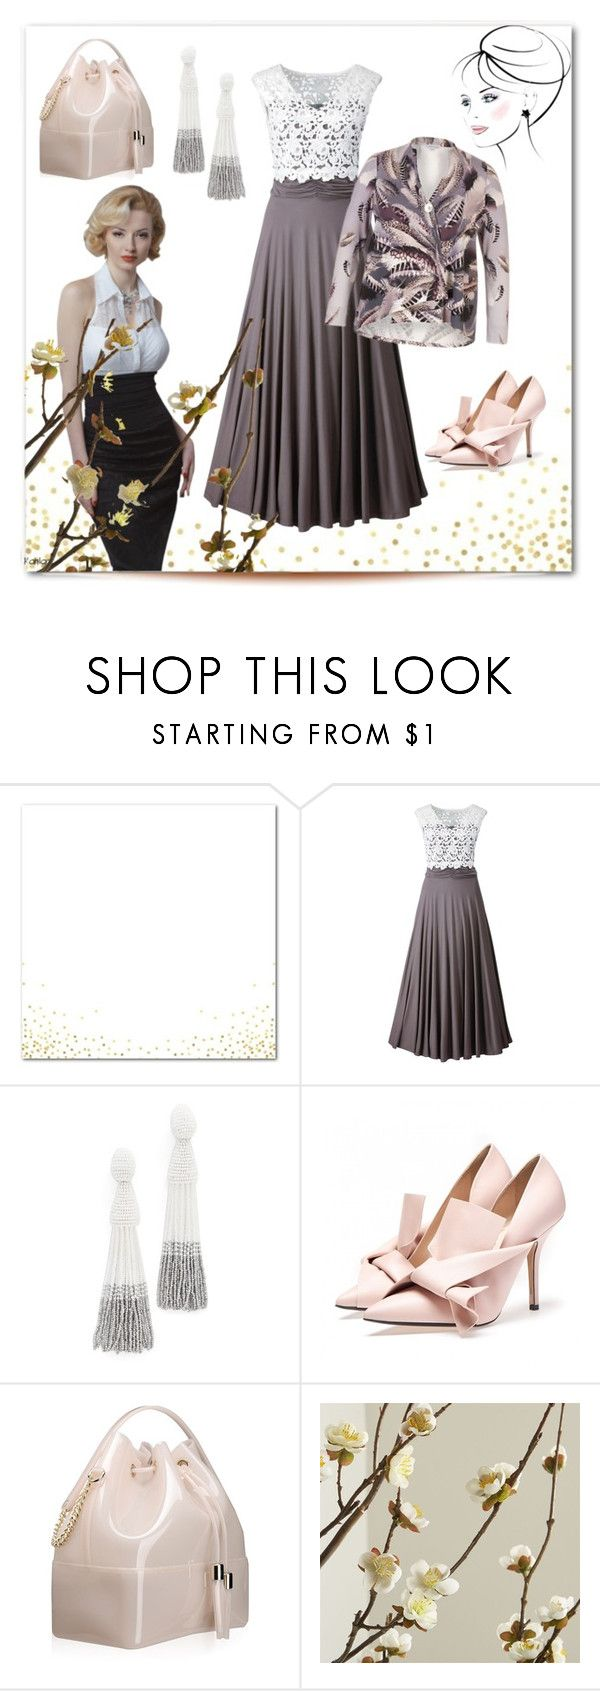 """""""Vintage future"""" by elza6 ❤ liked on Polyvore featuring Oscar de la Renta, Kartell, Crate and Barrel and vintage"""